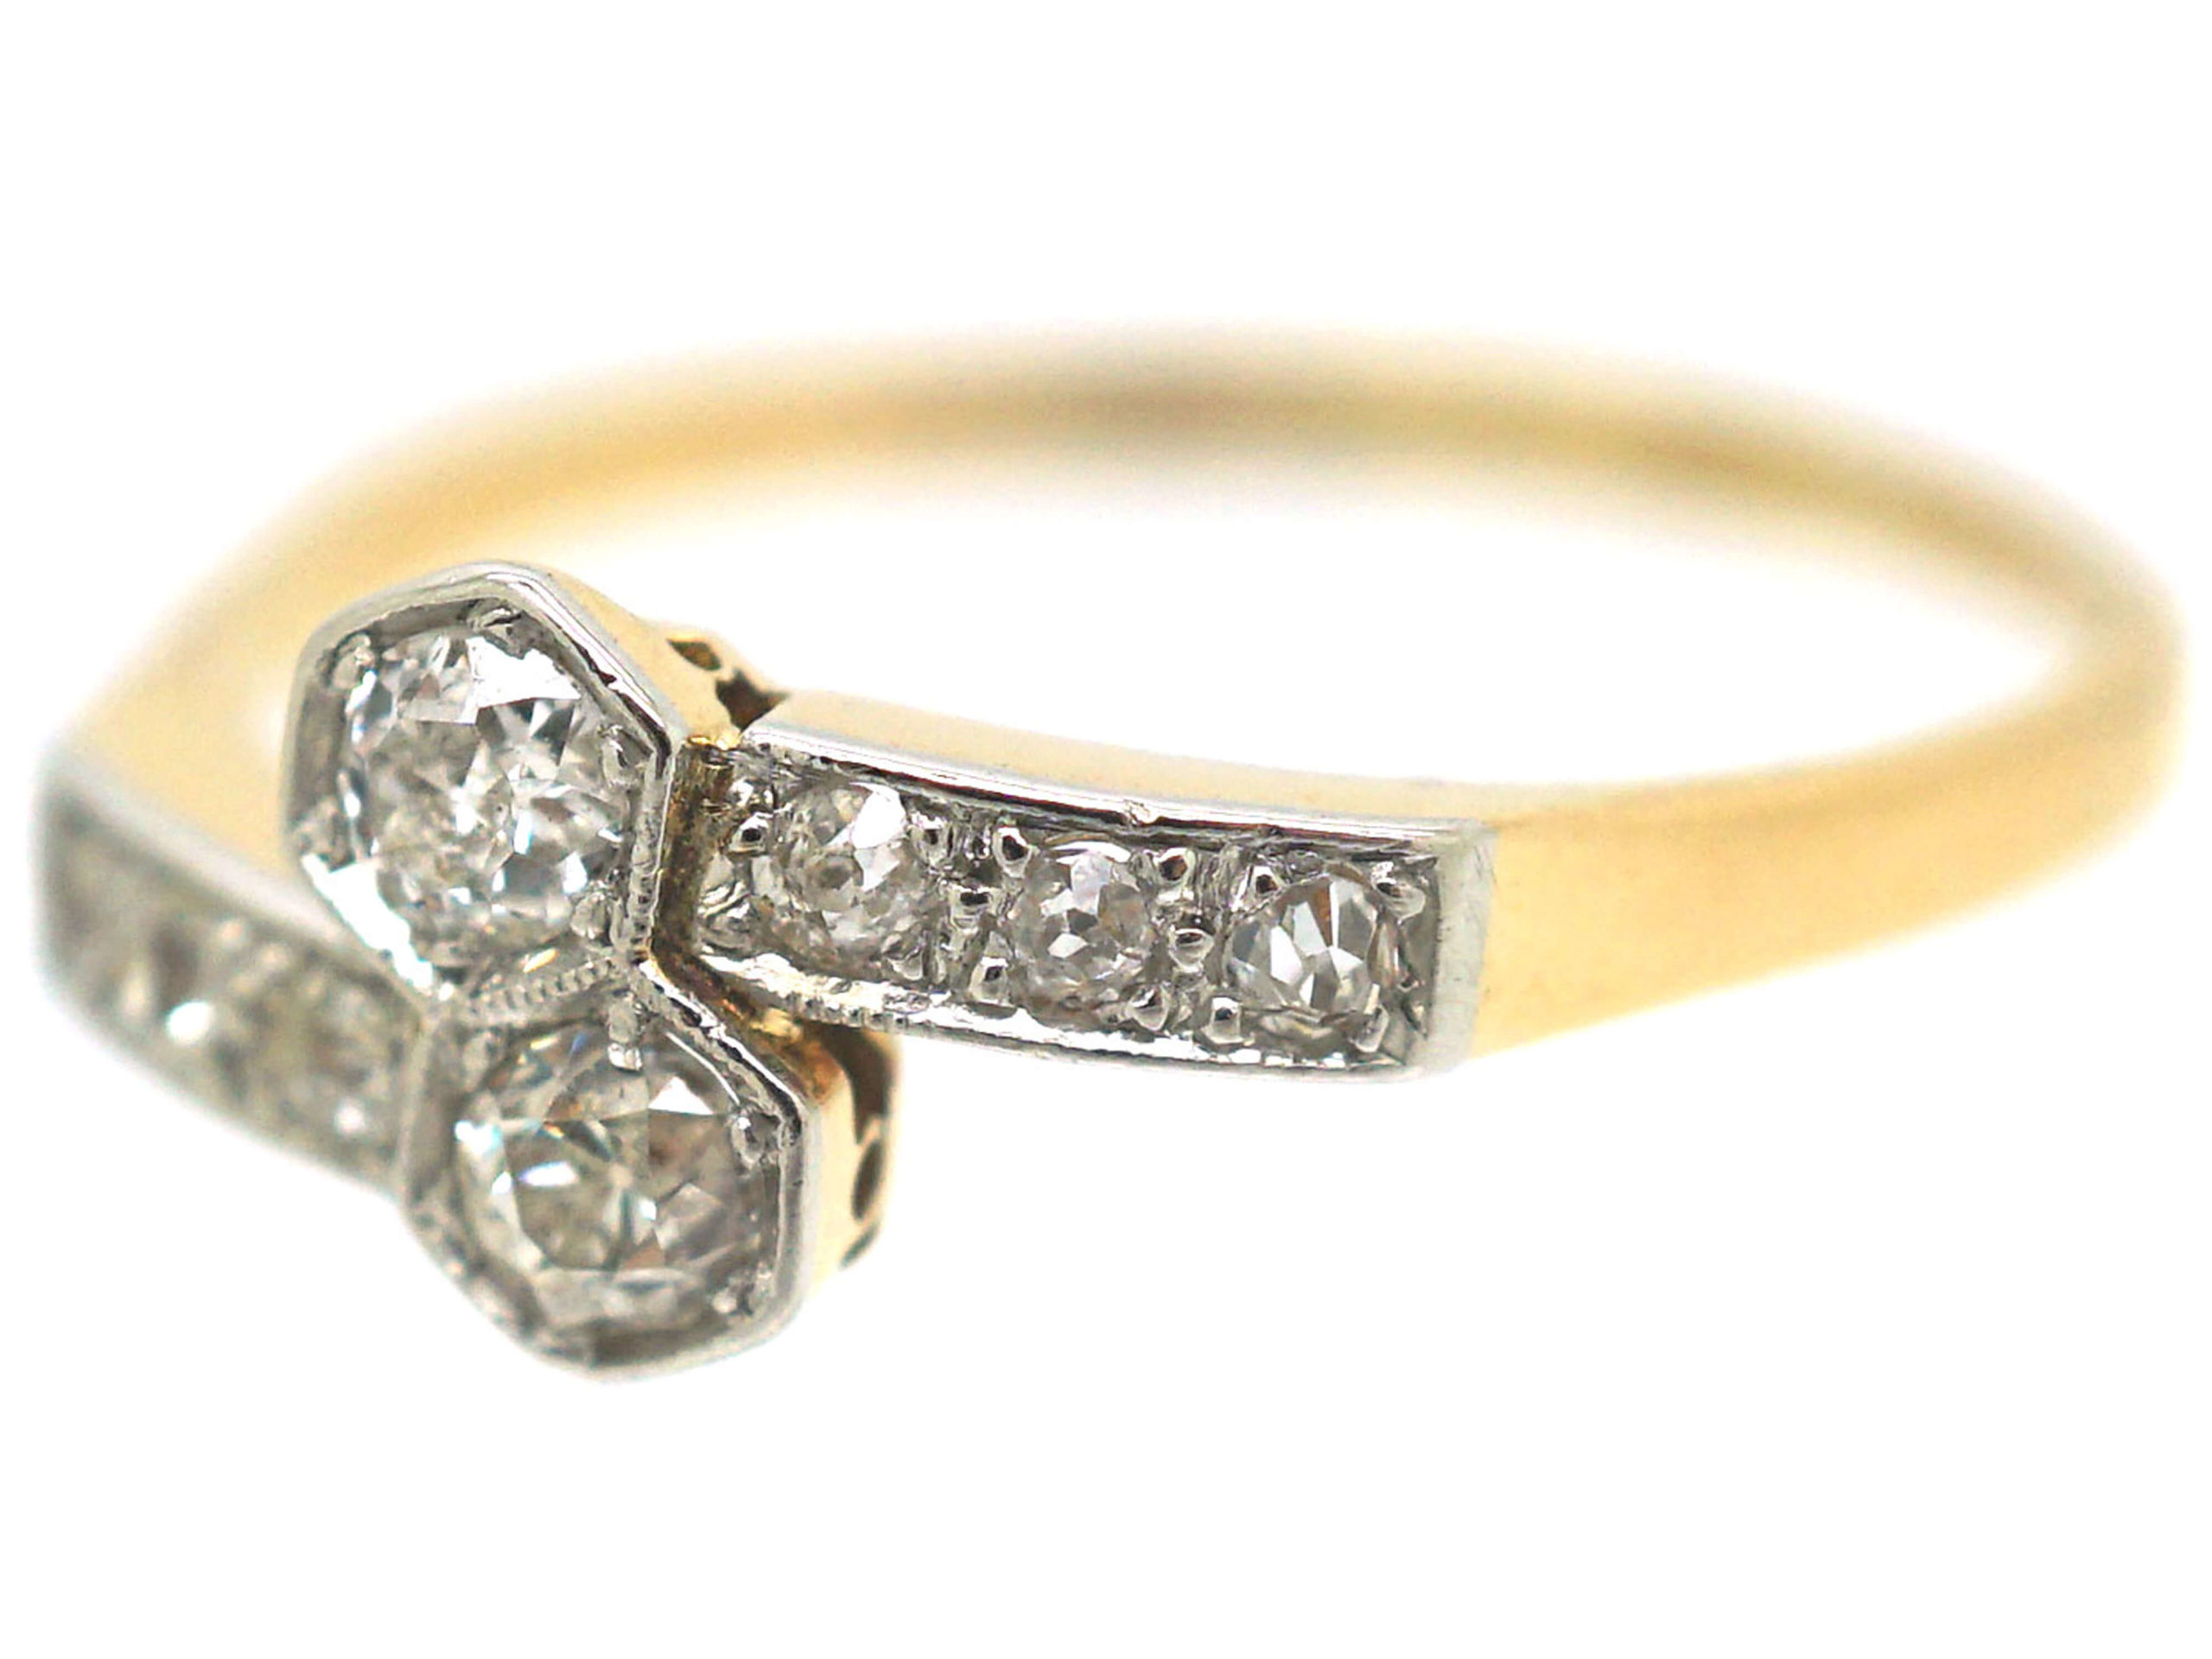 Art Deco 18ct Gold & Platinum Two Stone Diamond Crossover Ring with Diamond Set Shoulders